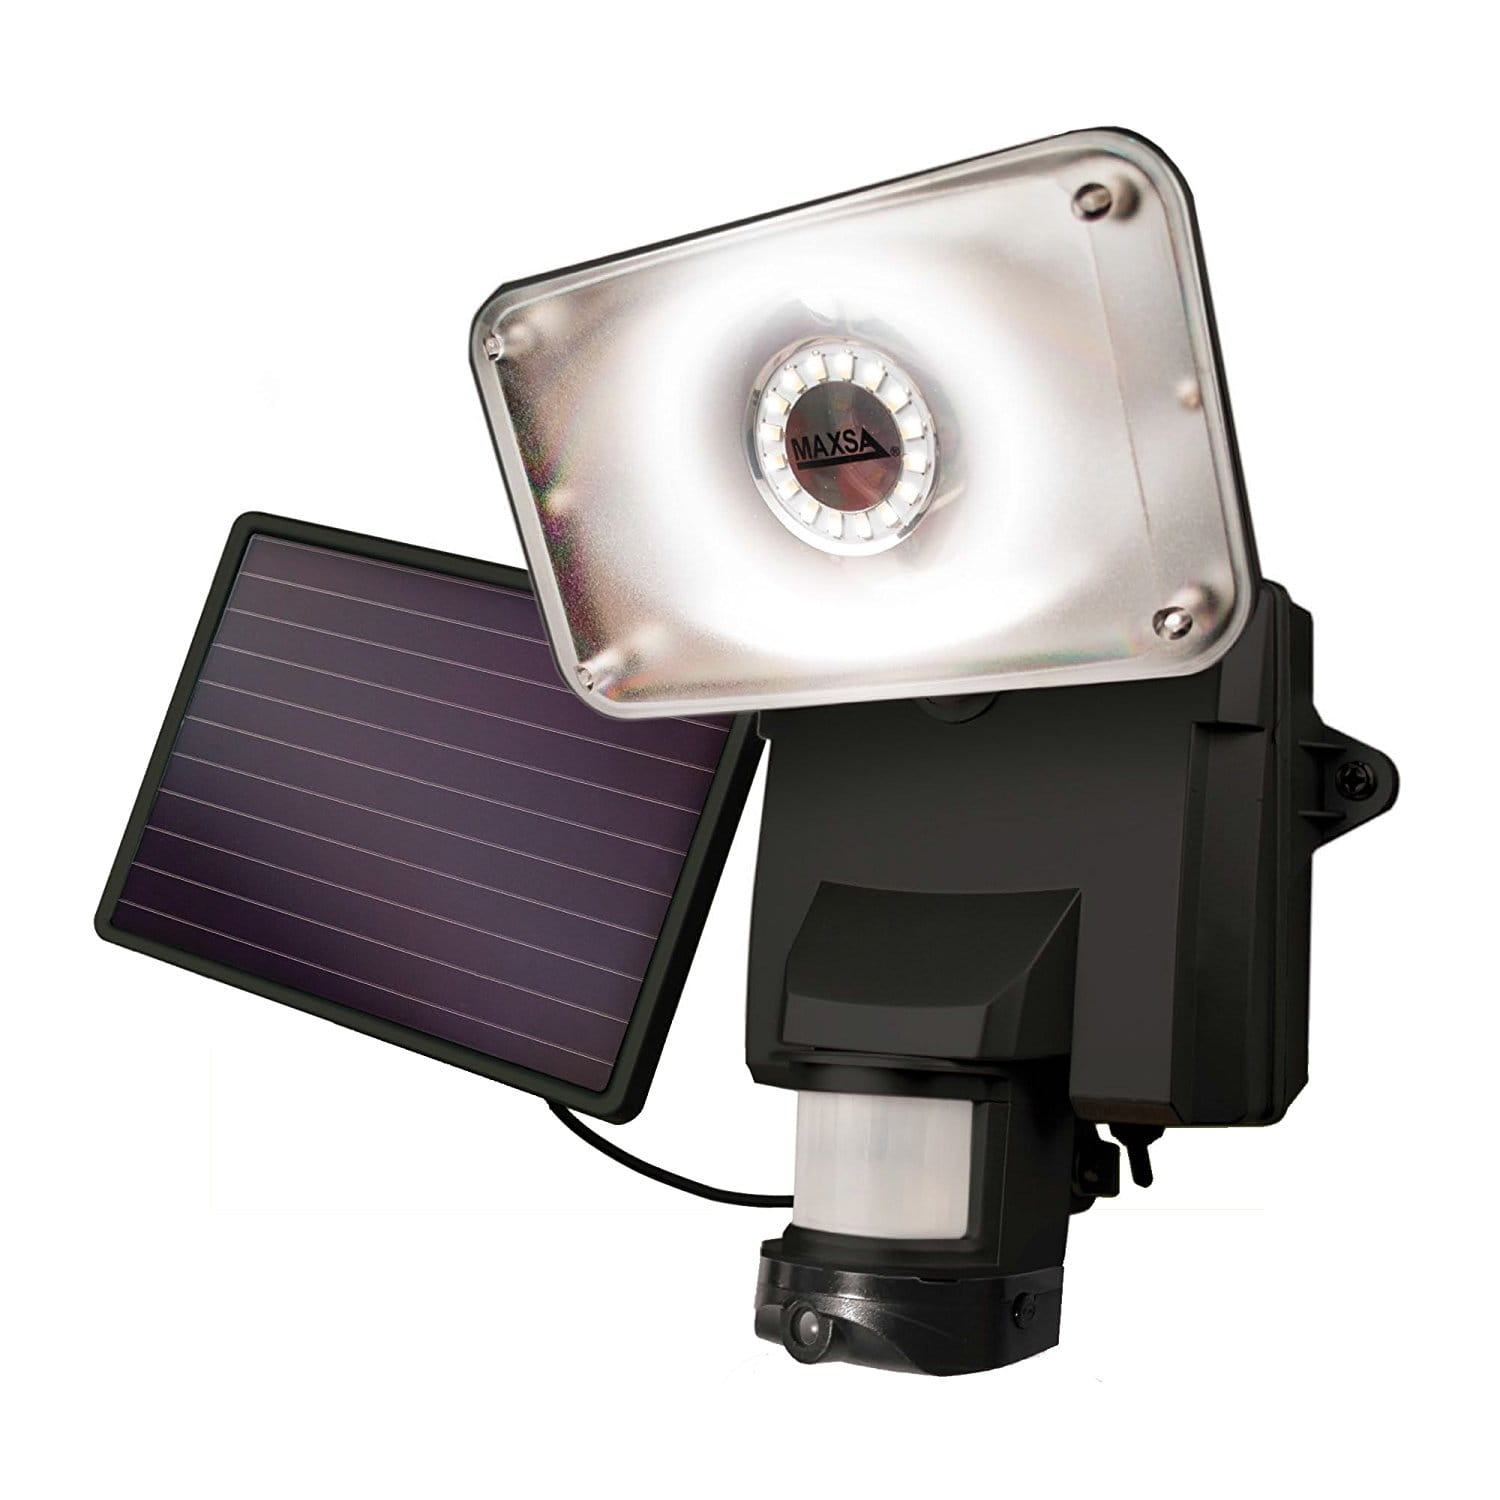 product image of a maxsa solar-powered security light and camera